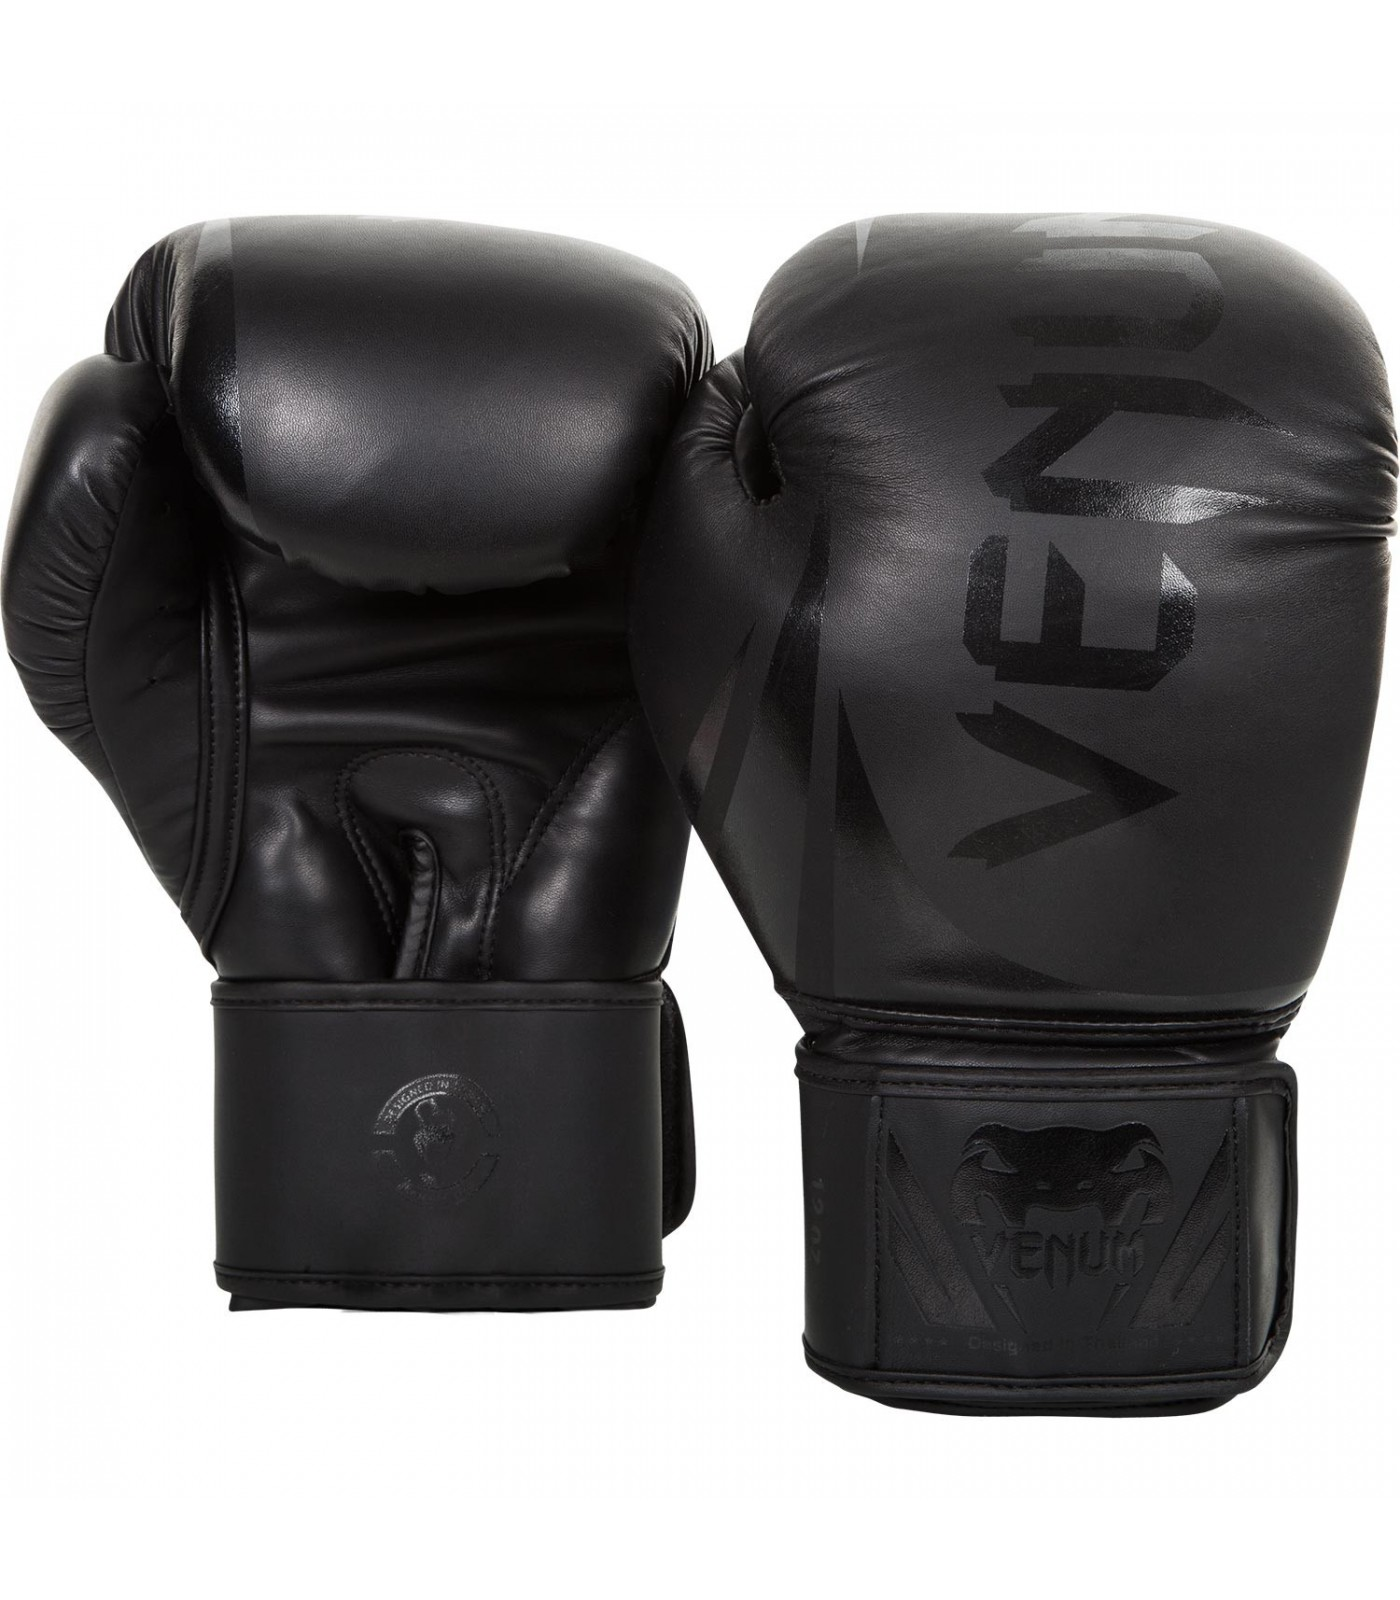 Боксови ръкавици - Venum Challenger 2.0 Boxing Gloves - Black/Black​